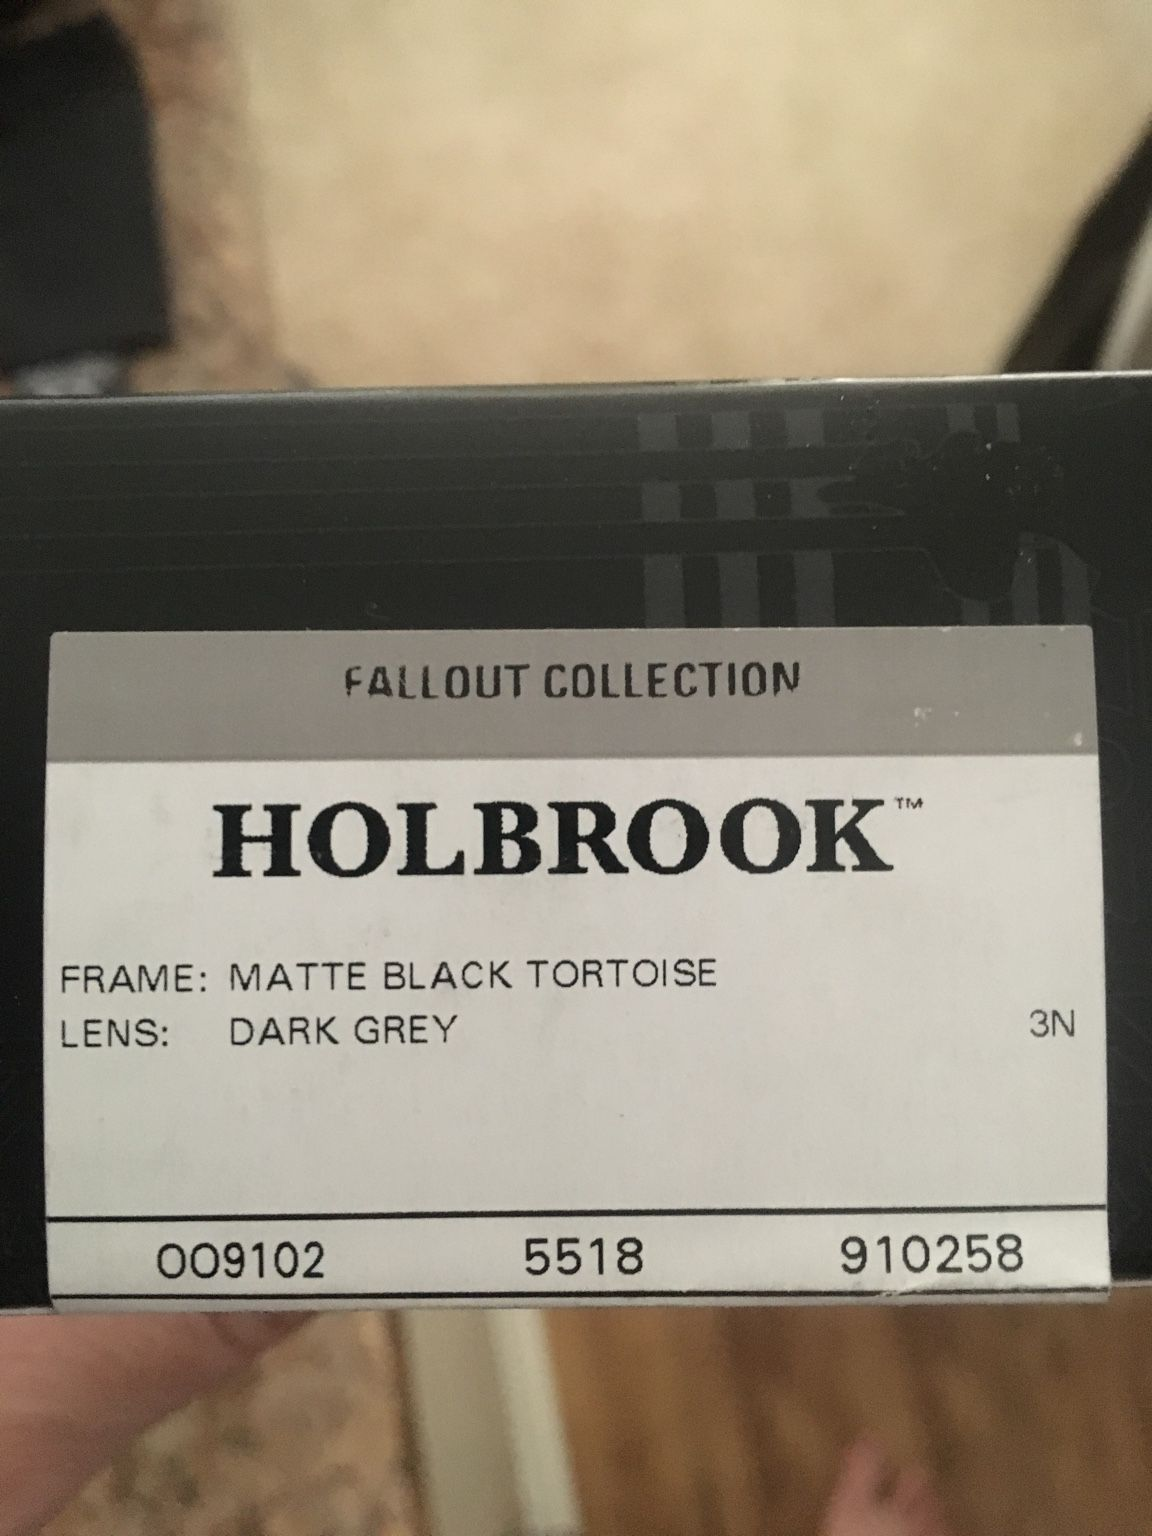 LNIB Holbrook Black Fallout Collection - 97aacd309f9454e46066b888b917a741.jpg